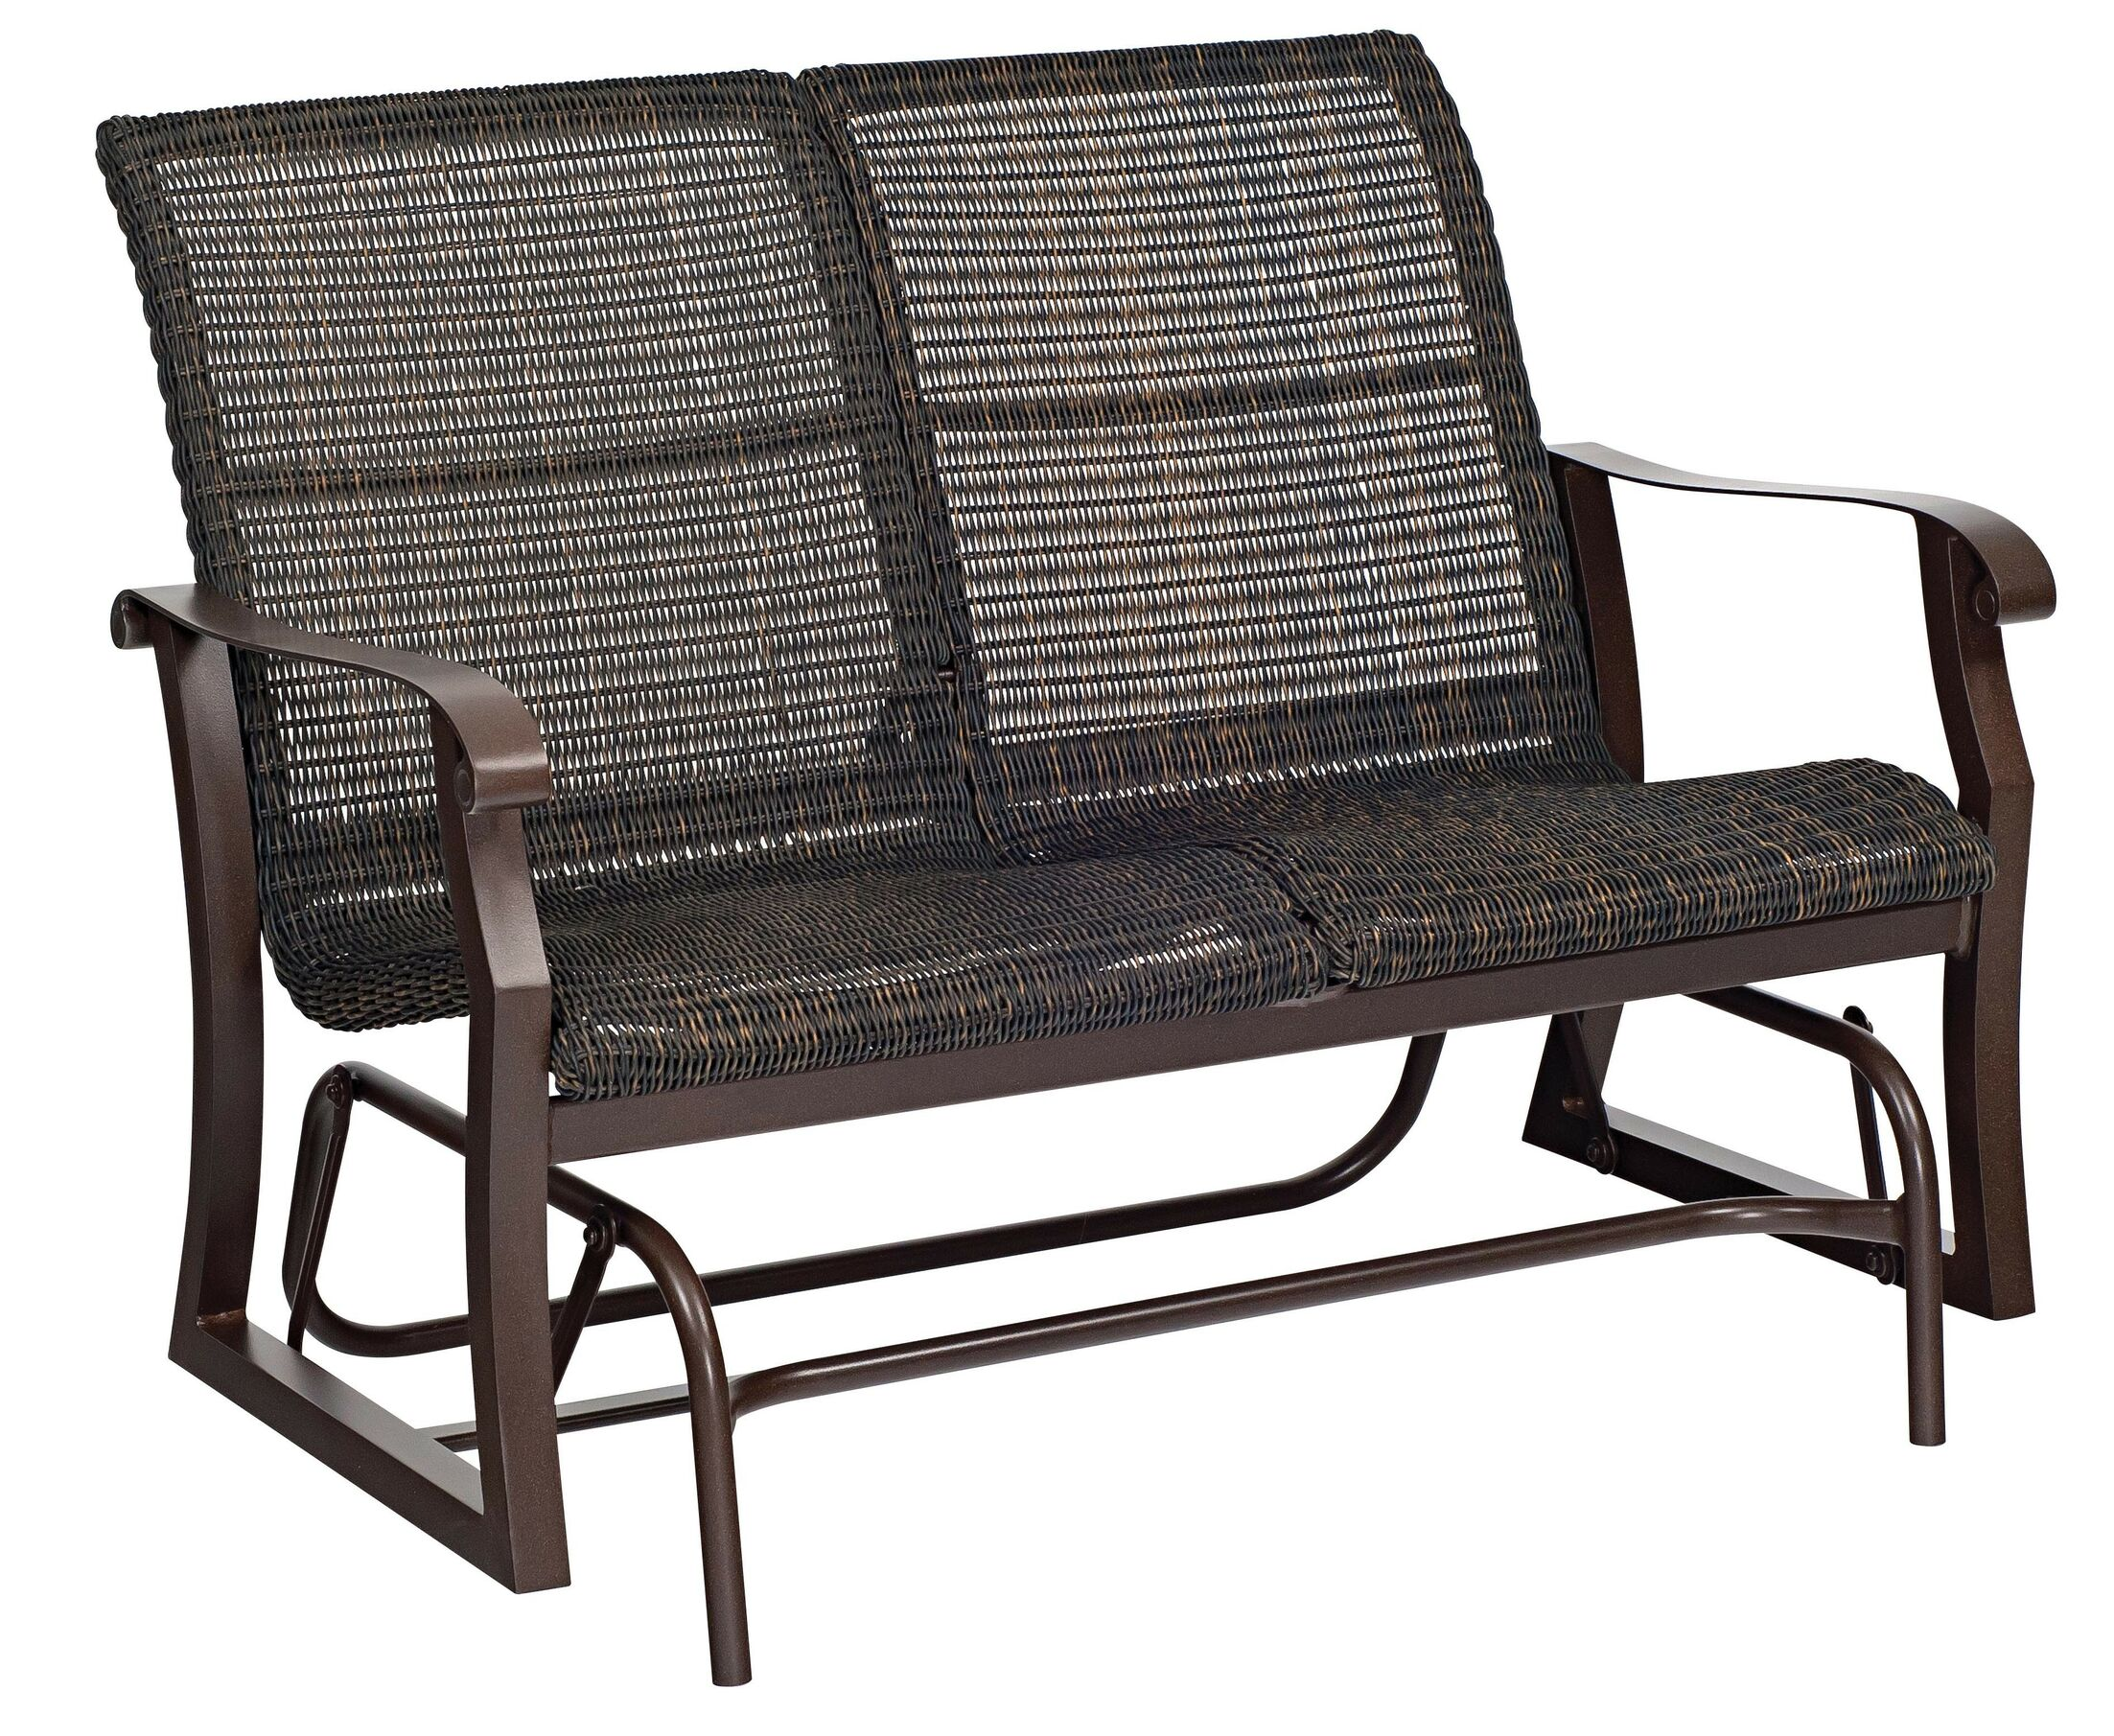 Cortland Woven Glider Loveseat Frame Color: Chestnut Brown